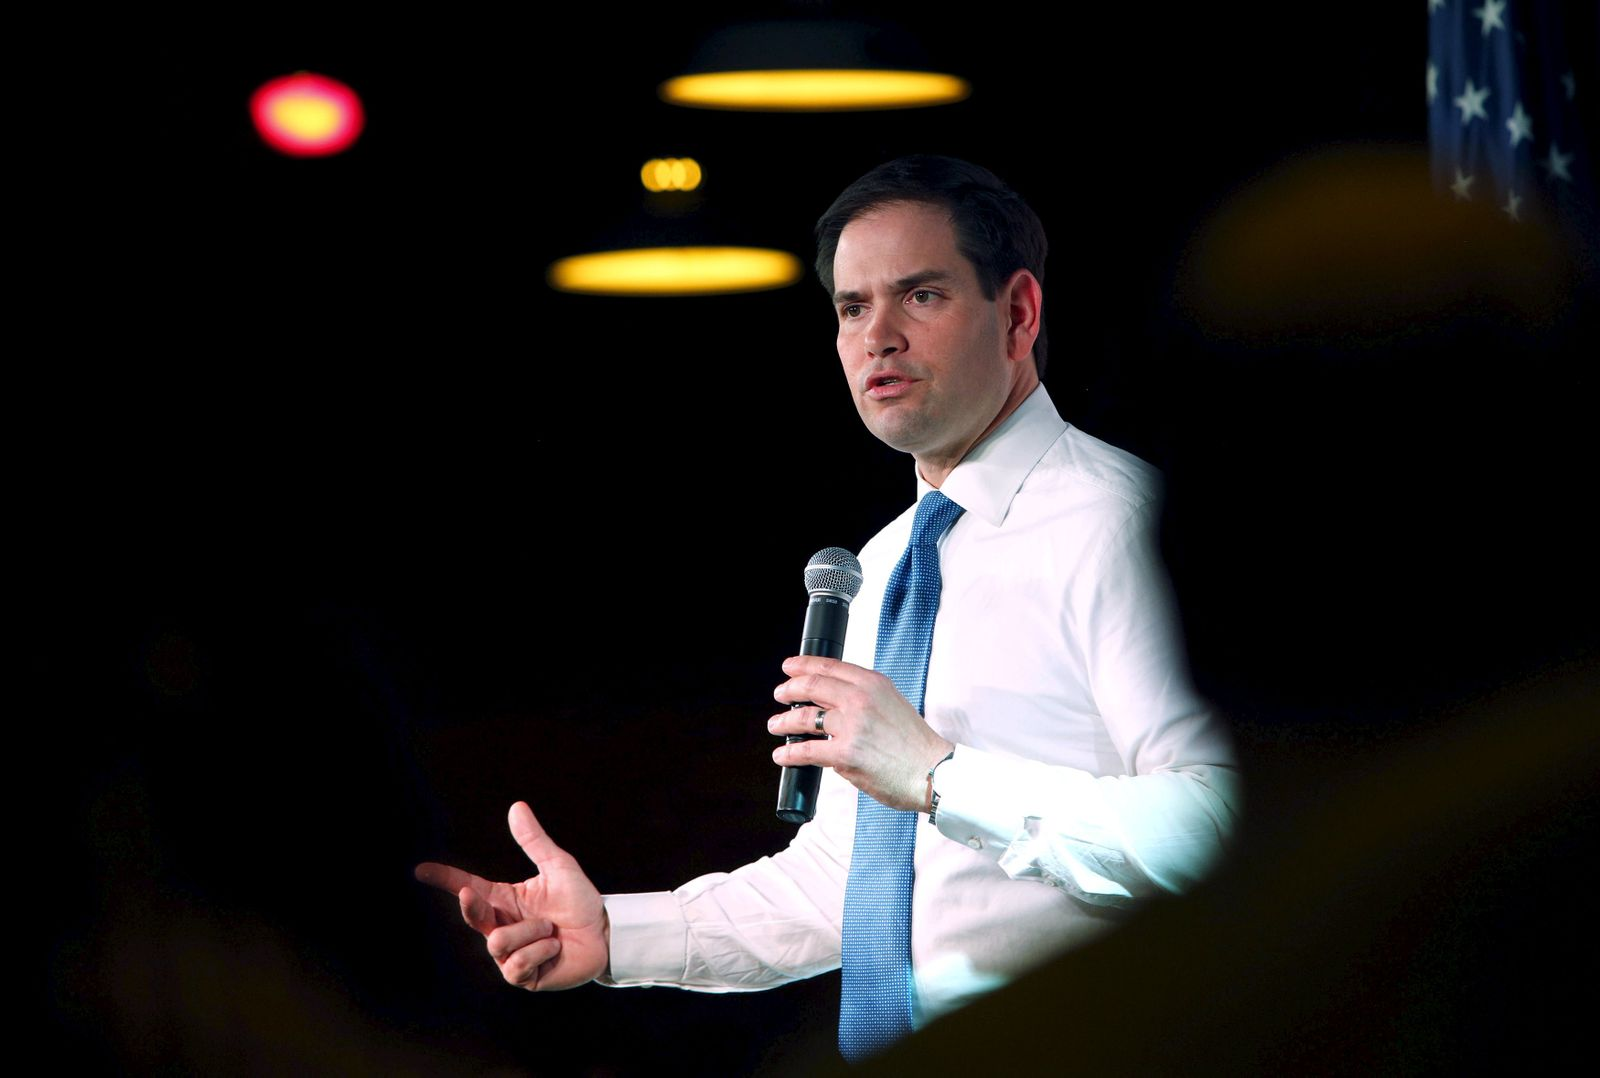 Republican presidential candidate Senator Marco Rubio (R-Fla.) speaks during a campaign event at the Maintenance Shop at Iowa State University in Ames